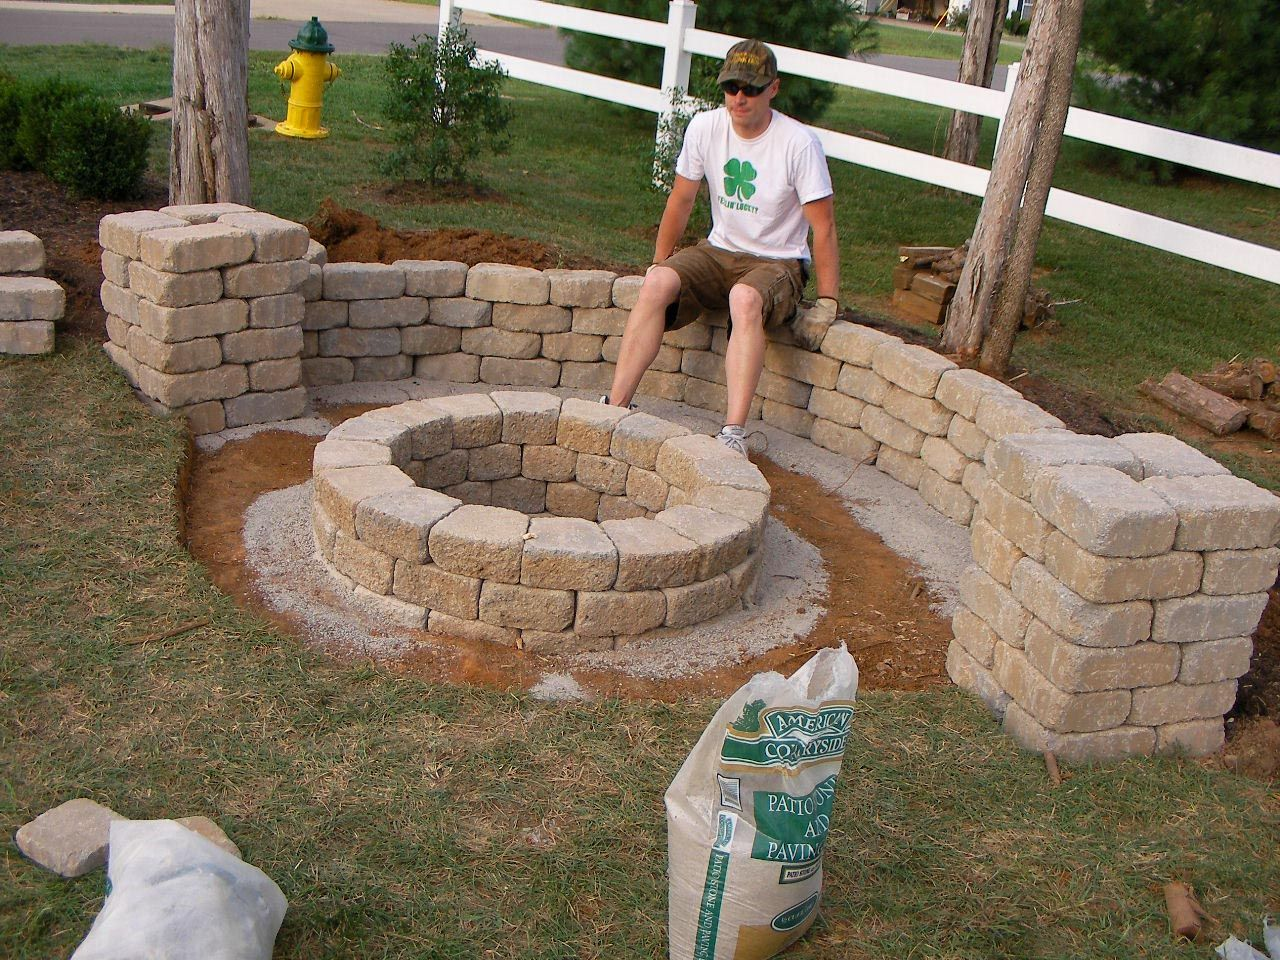 Backyard patio firepit ideas - Easy Backyard Fire Pit Designs More